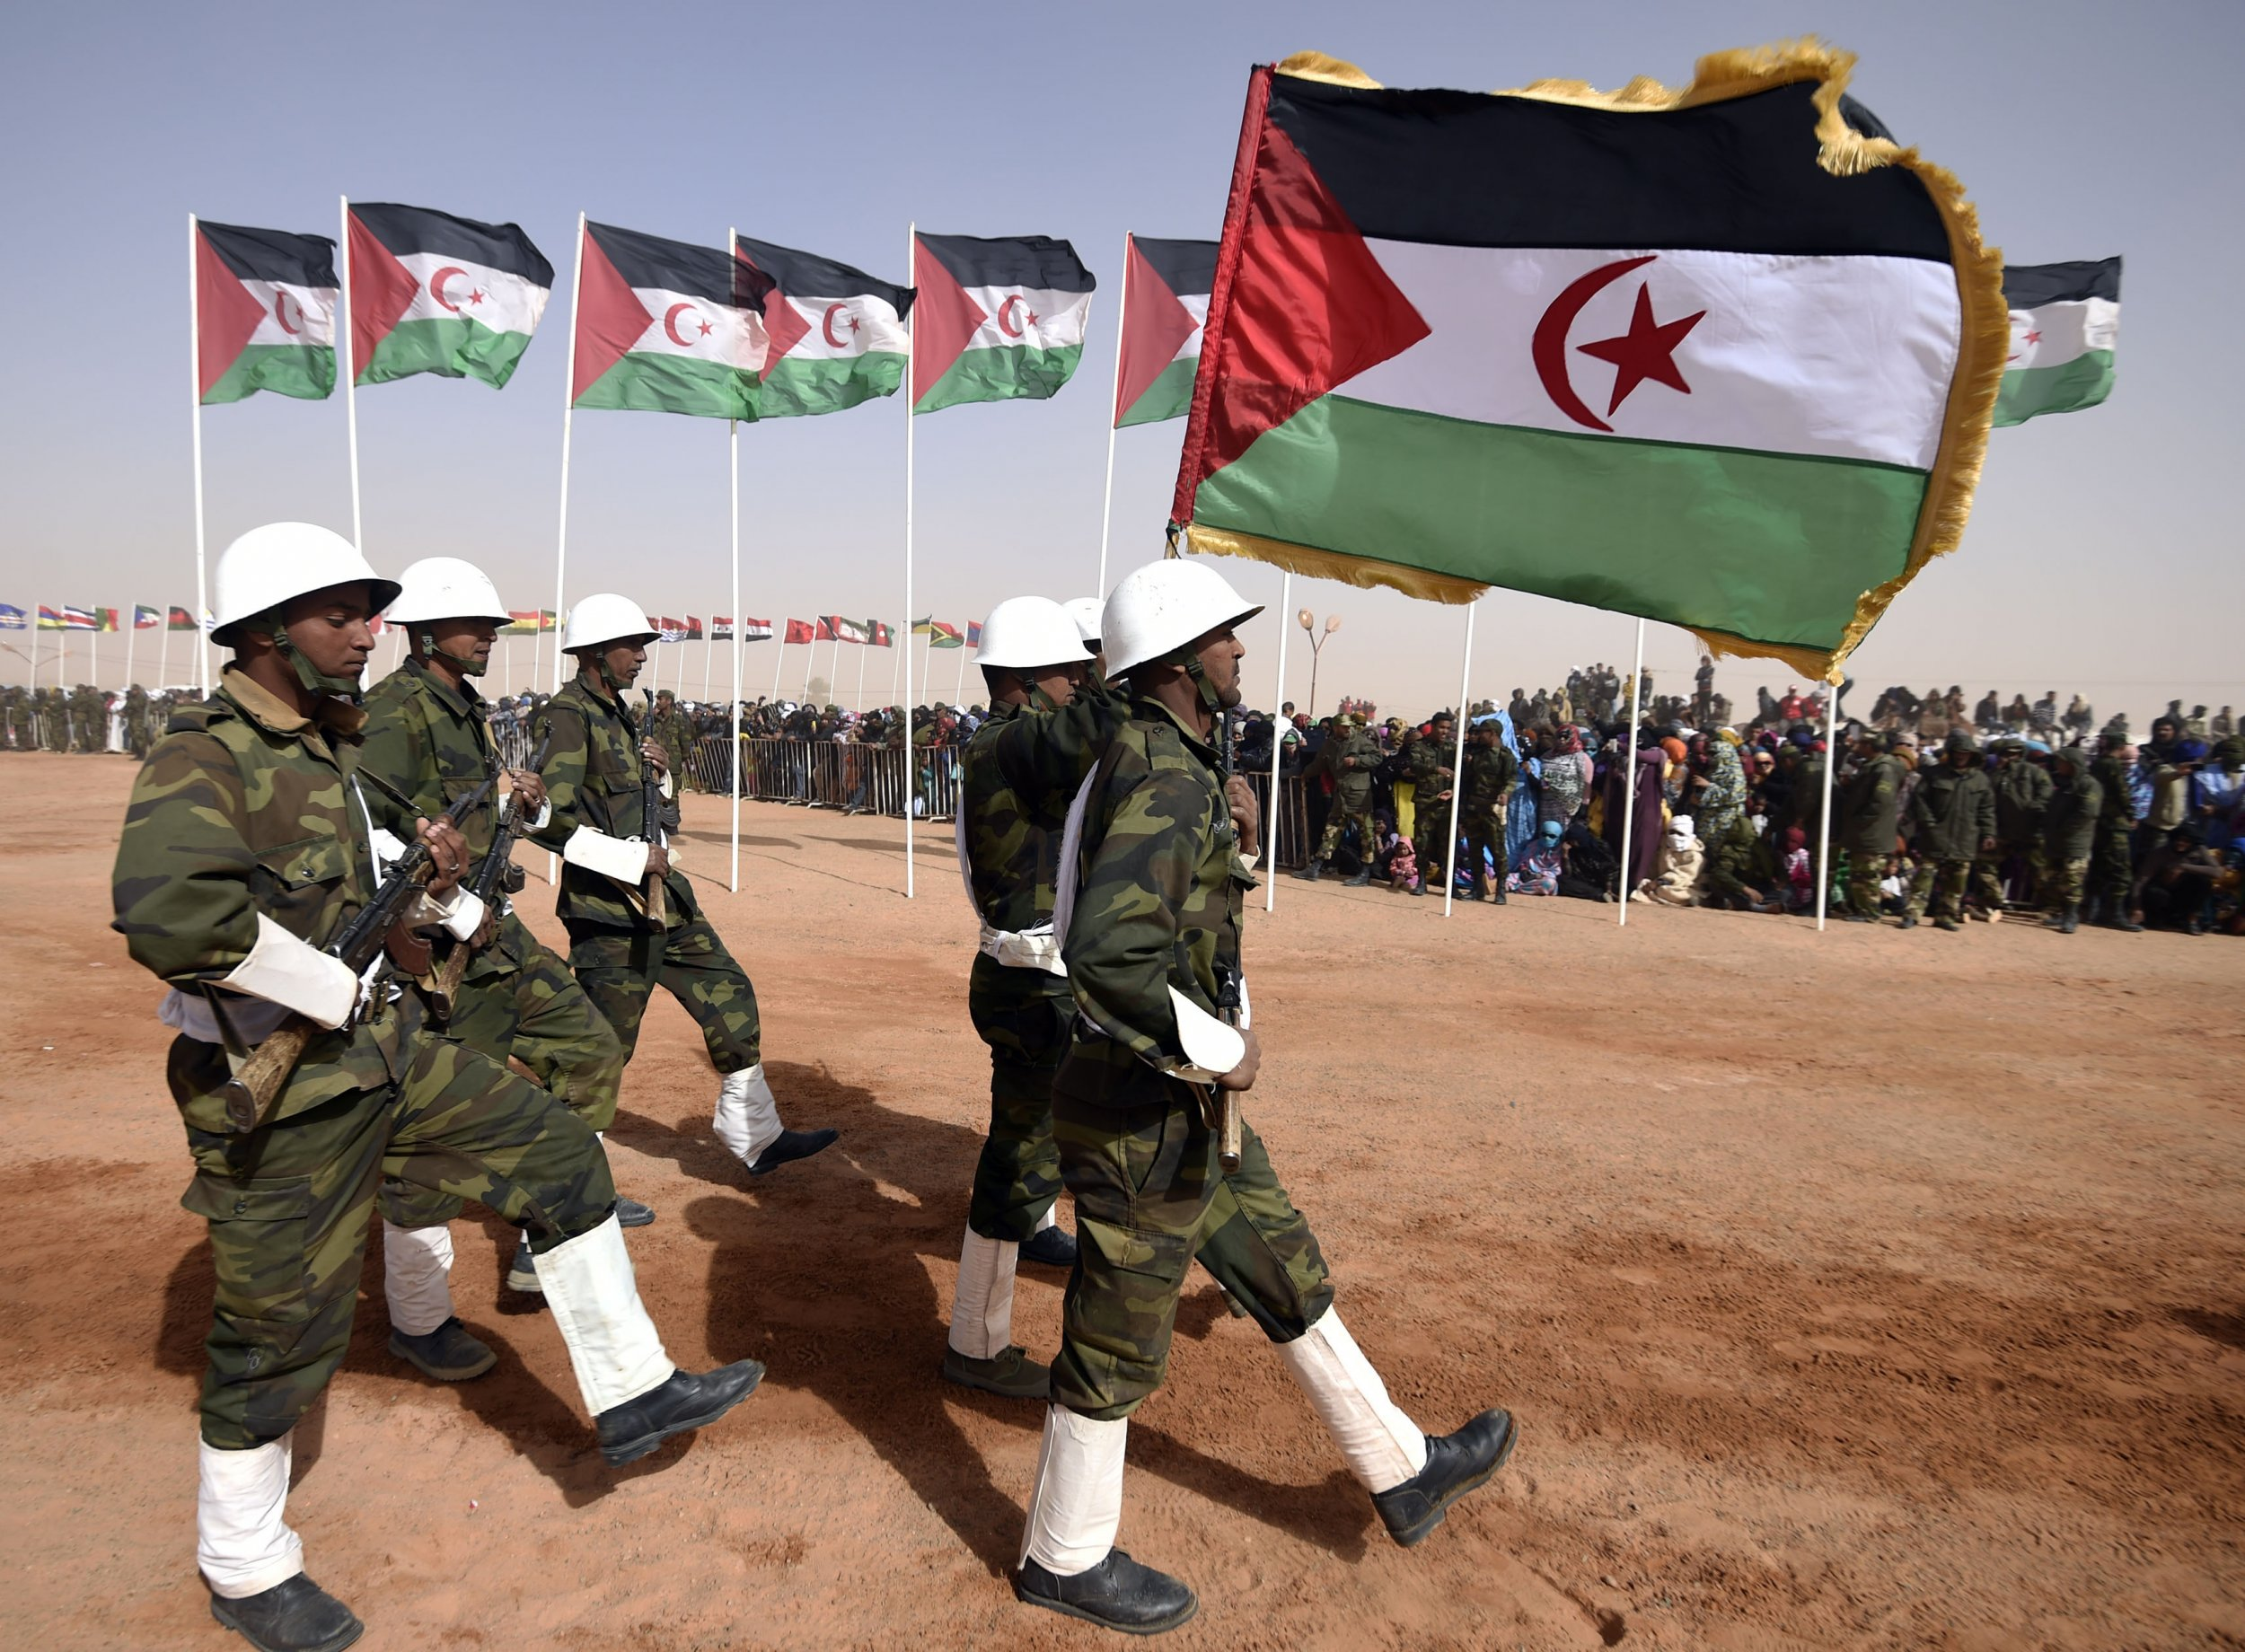 Sahrawi soldiers parade in Algeria.